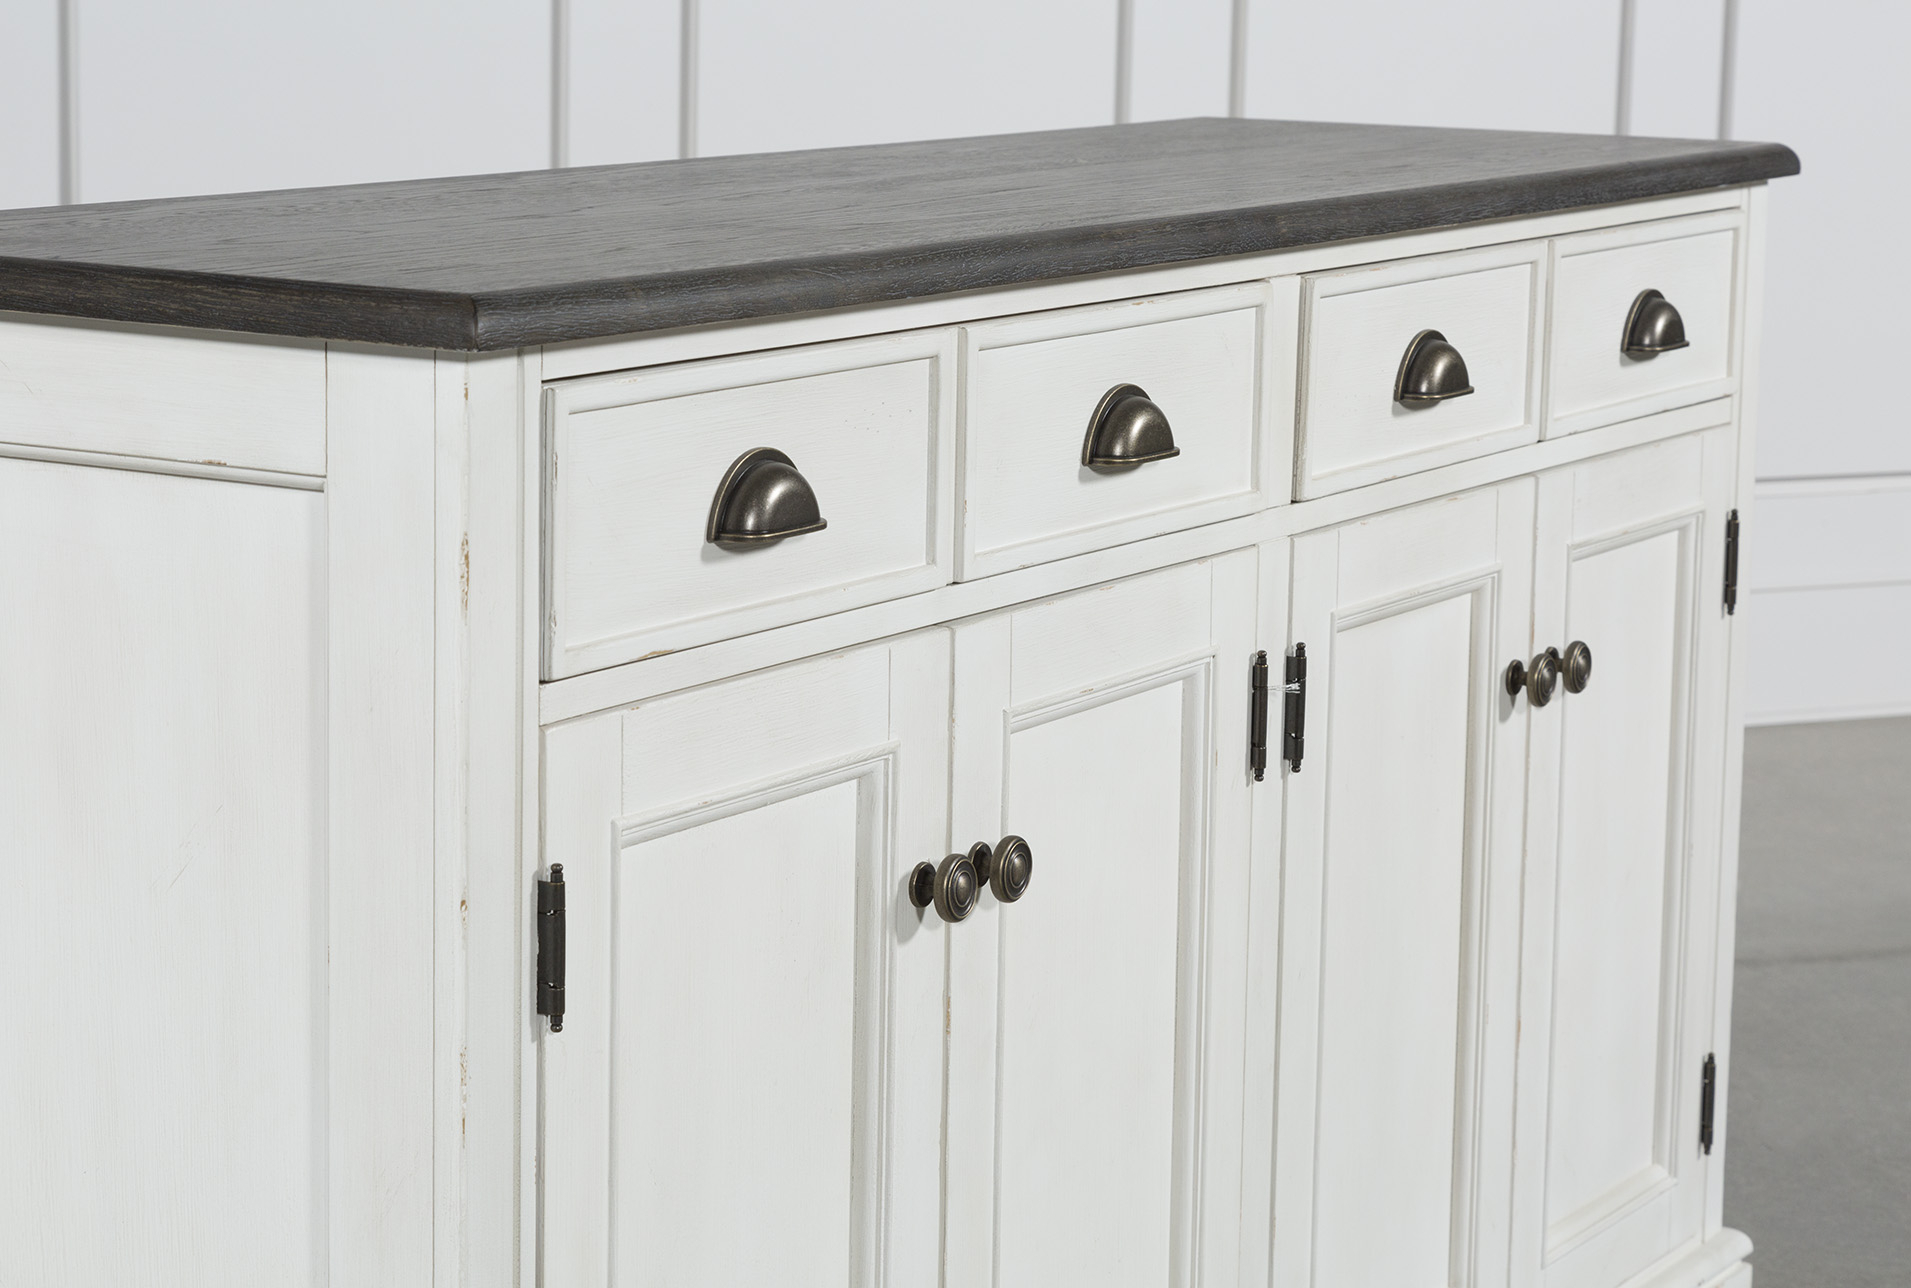 Candice Ii Sideboard In 2019 | Products | Sideboard, Cabinet Inside Amityville Sideboards (Image 18 of 30)